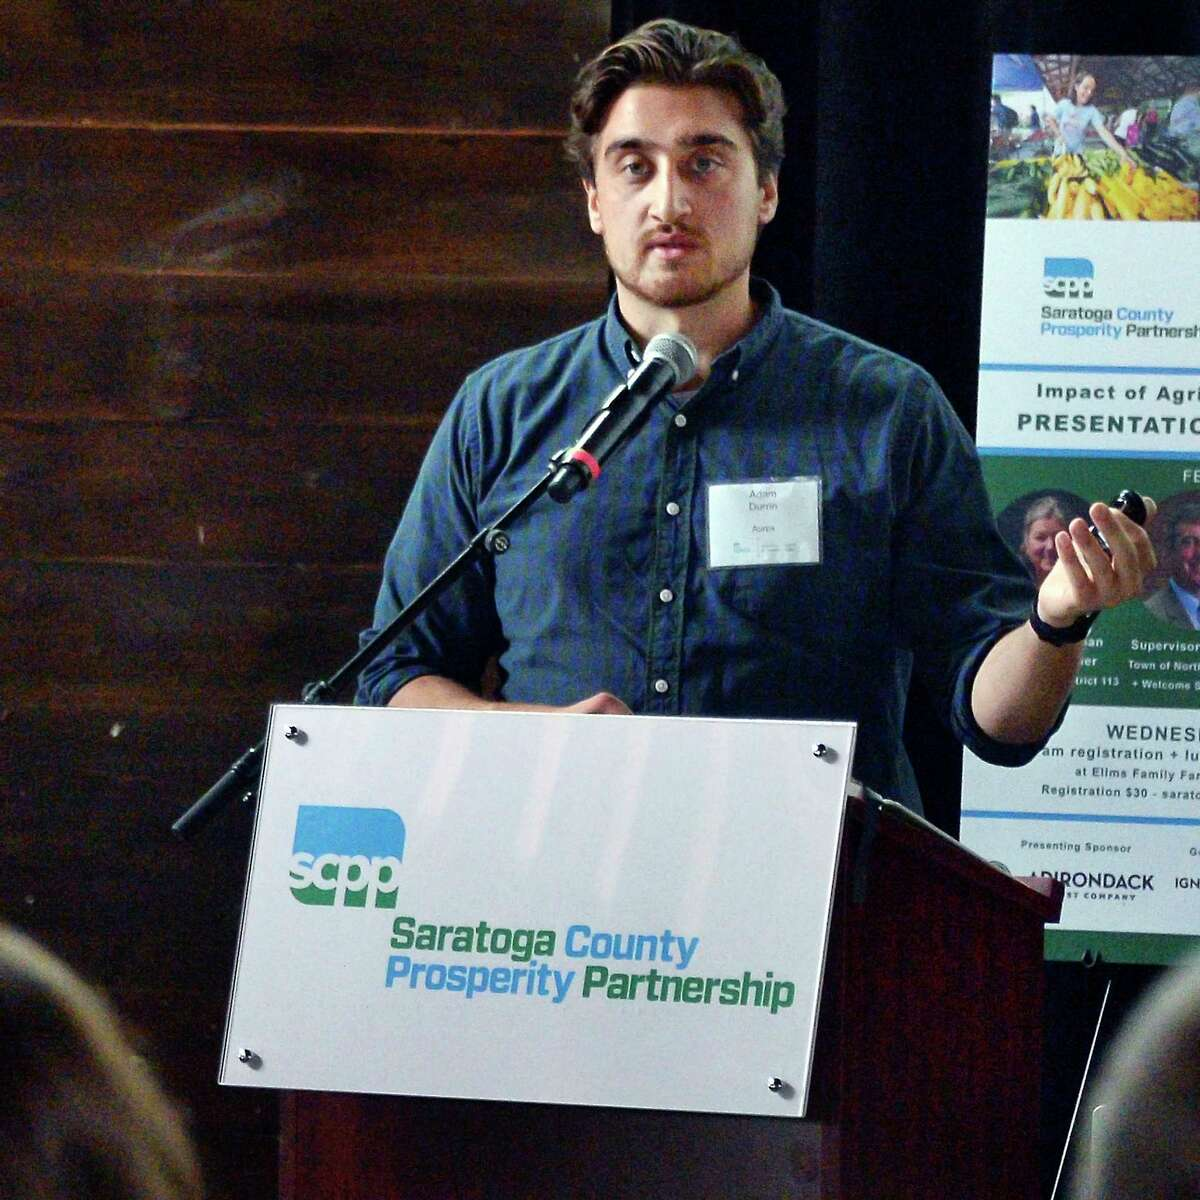 Adam Durrin of Aurox discusses the use of drones to accurately measure and track animal feed to save farms money & improve safety during a Saratoga County Prosperity Partnership luncheon at the Ellms Family Farm Wednesday Sept. 19, 2018 in Ballston, NY. (John Carl D'Annibale/Times Union)